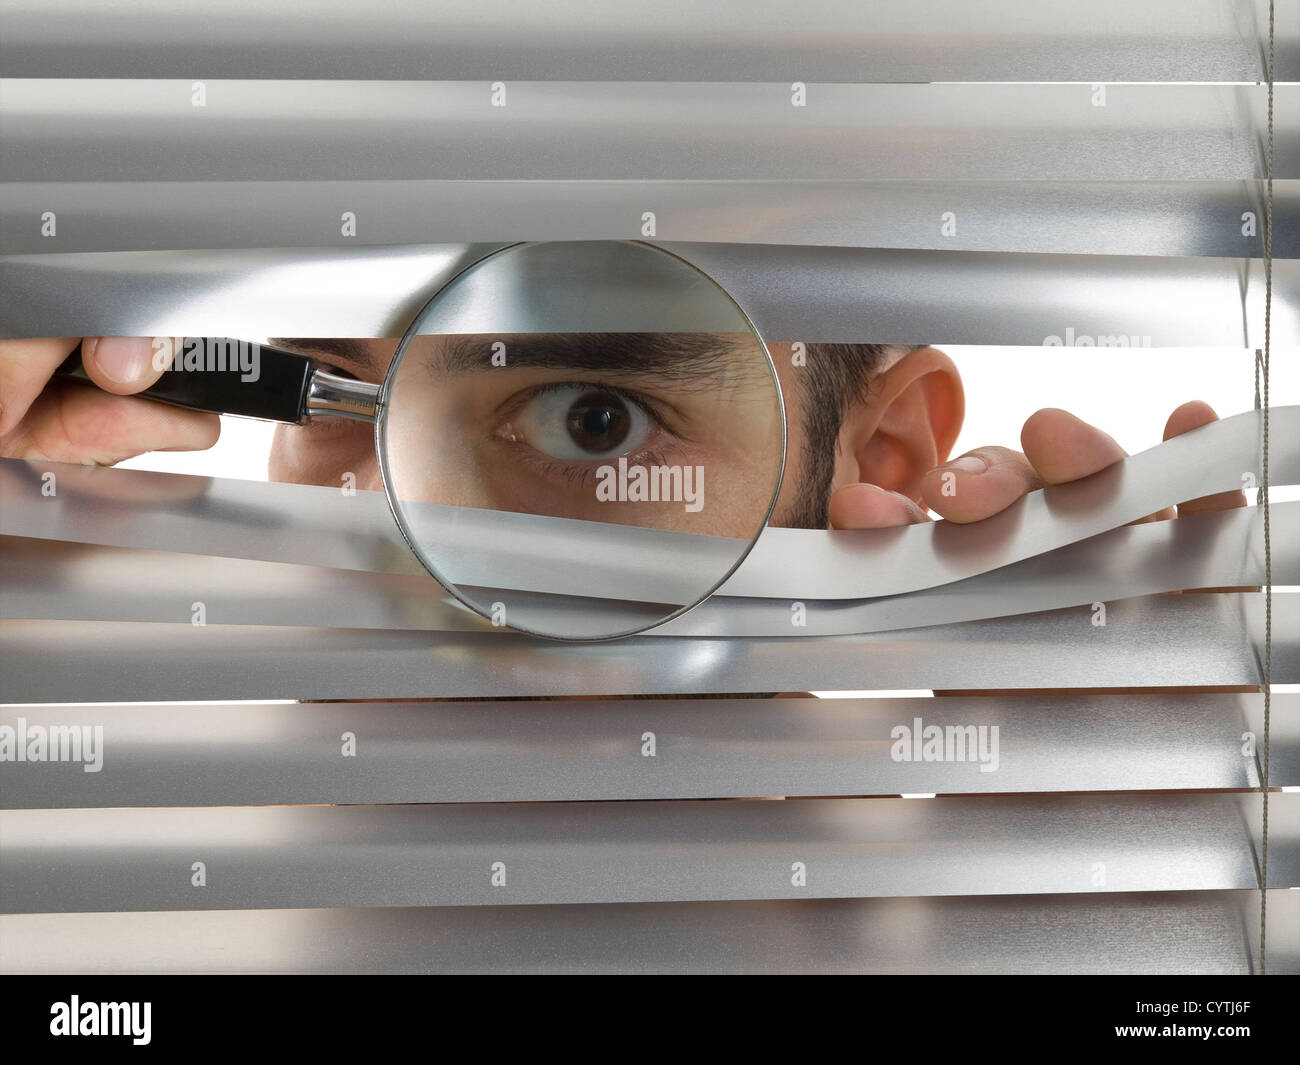 A man is peeping through the blinds with a magnifying glass. - Stock Image